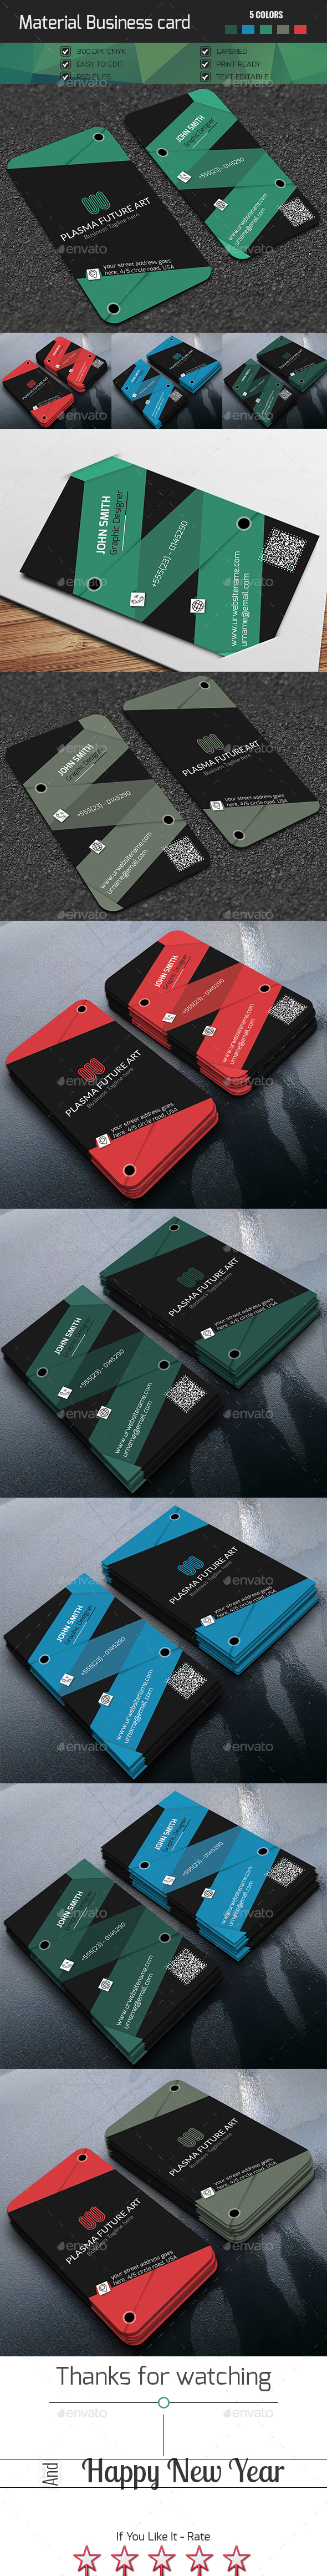 Material Design Business Card - Creative Business Cards